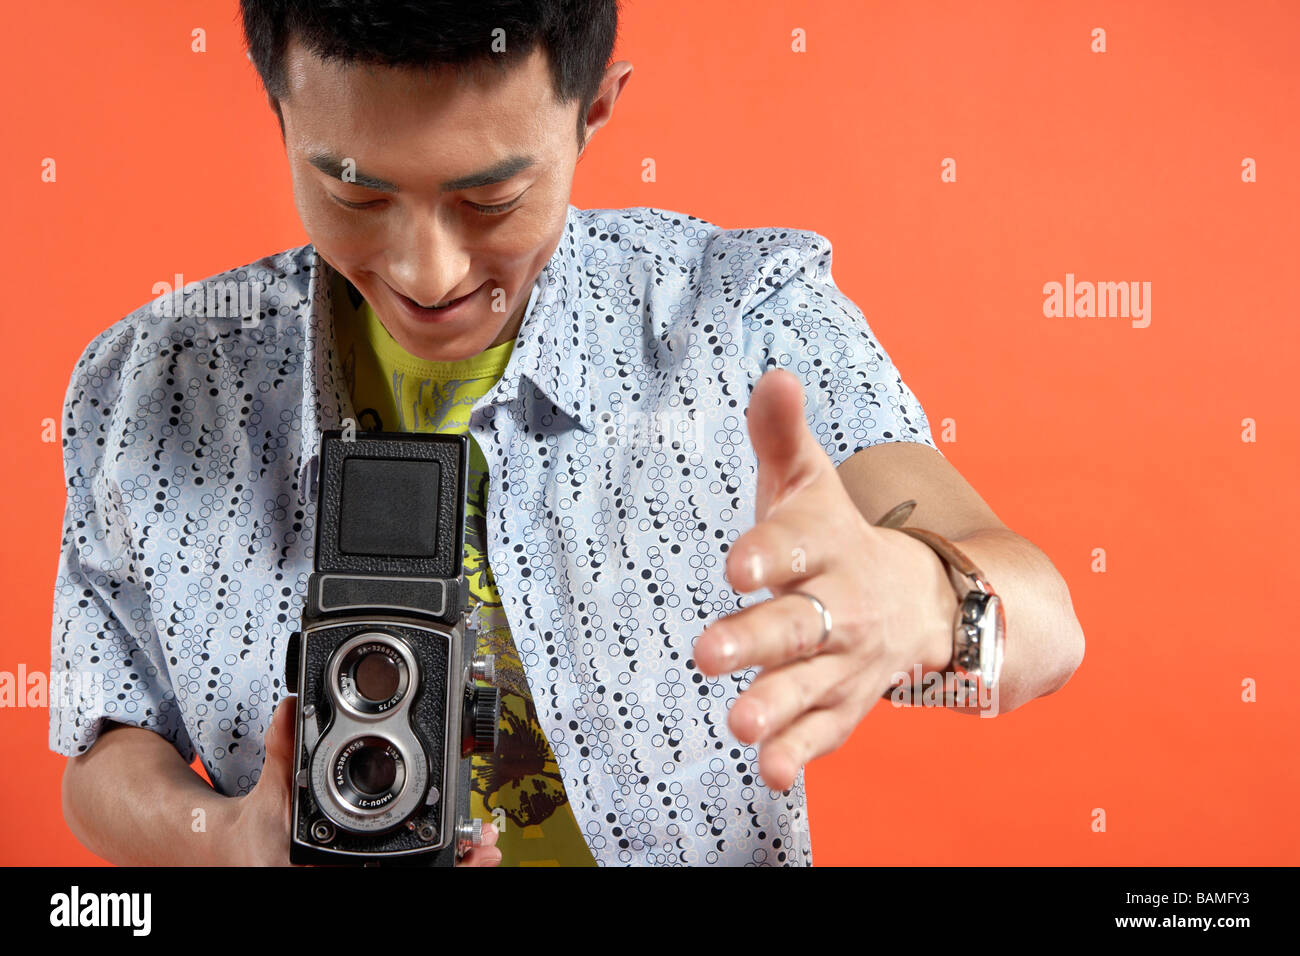 Young Man Holding Vintage Film Camera - Stock Image